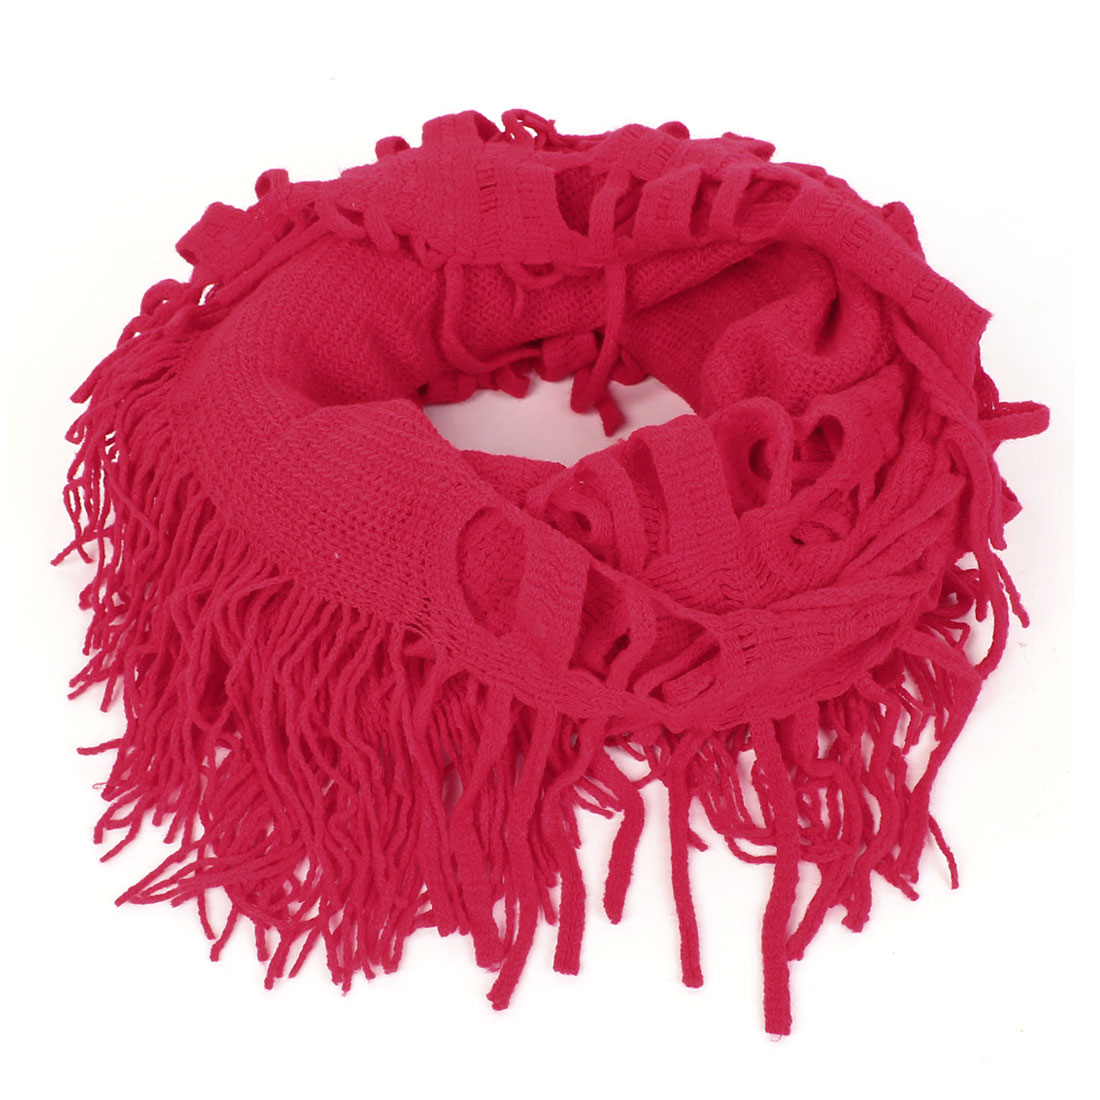 Lady Tassels Decorative Hollow Out Knitted Winter Warm Scarf Wrap Red